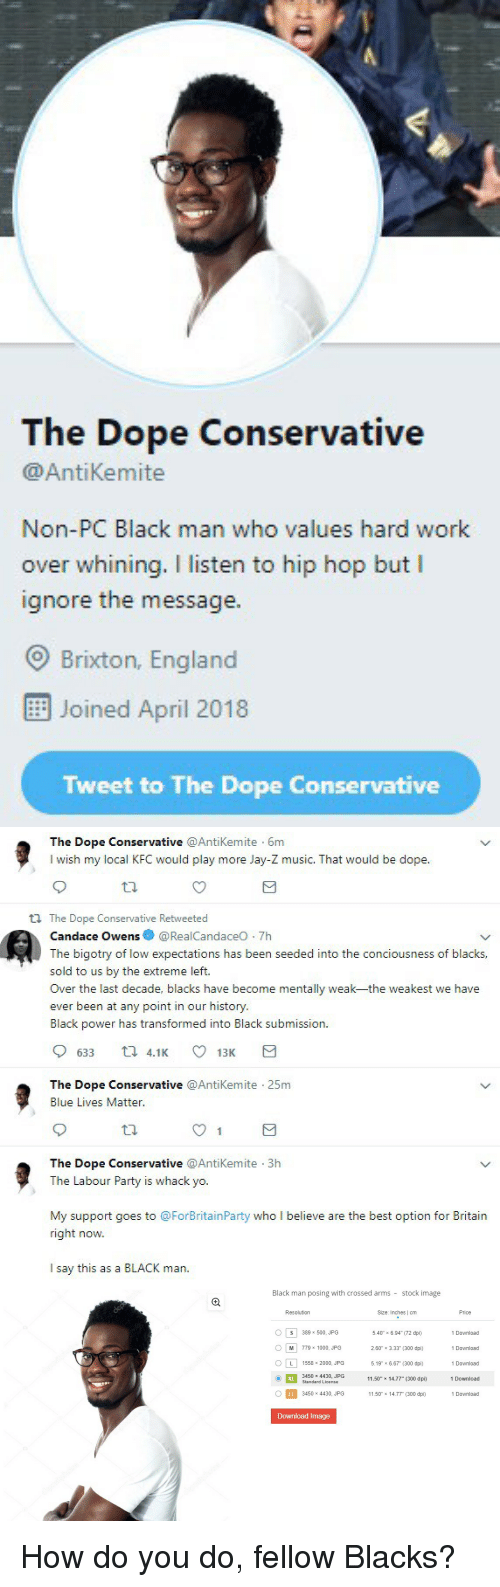 "Blackpeopletwitter, Dope, and England: The Dope Conservative  @AntiKemite  Non-PC Black man who values hard work  over whining. I listen to hip hop but I  ignore the message.  O Brixton, England  Joined April 2018  Tweet to The Dope Conservative   The Dope Conservative @AntiKemite 6m  I wish my local KFC would play more Jay-Z music. That would be dope  tl The Dope Conservative Retweeted  Candace Owens@RealCandaceO 7h  The bigotry of low expectations has been seeded into the conciousness of blacks,  sold to us by the extreme left.  Over the last decade, blacks have become mentally weak-the weakest we have  ever been at any point in our history  Black power has transformed into Black submission.  633 t 4.1 13K  The Dope Conservative @Antikemite 25m  Blue Lives Matter  The Dope Conservative @AntiKemite 3h  The Labour Party is whack yo.  My support goes to @ForBritainParty who I believe are the best option for Britain  right now.  I say this as a BLACK man.   Black man posing with crossed arms stock image  Resolution  Size: Inches | cm  Price  0 | S | 389 x 500, JPG  M 779 1000 JPG  ○[L] 1558 × 2000, JPG  1 Download  5.40"" x 6.94"" (72 dpi)  2.60"" x 3.33"" (300 dpi)  5.19"" x 6.67 (300 dpi)  1 Download  519"" × 6  1 Download  1 Download  1 Download  3450 x 4430, JPG  Standard License  11.50"" x 14.77"" (300 dpi)  3450 x 4430, JPG  11.50"" x 14.77"" (300 dpi)  Download Image How do you do, fellow Blacks?"